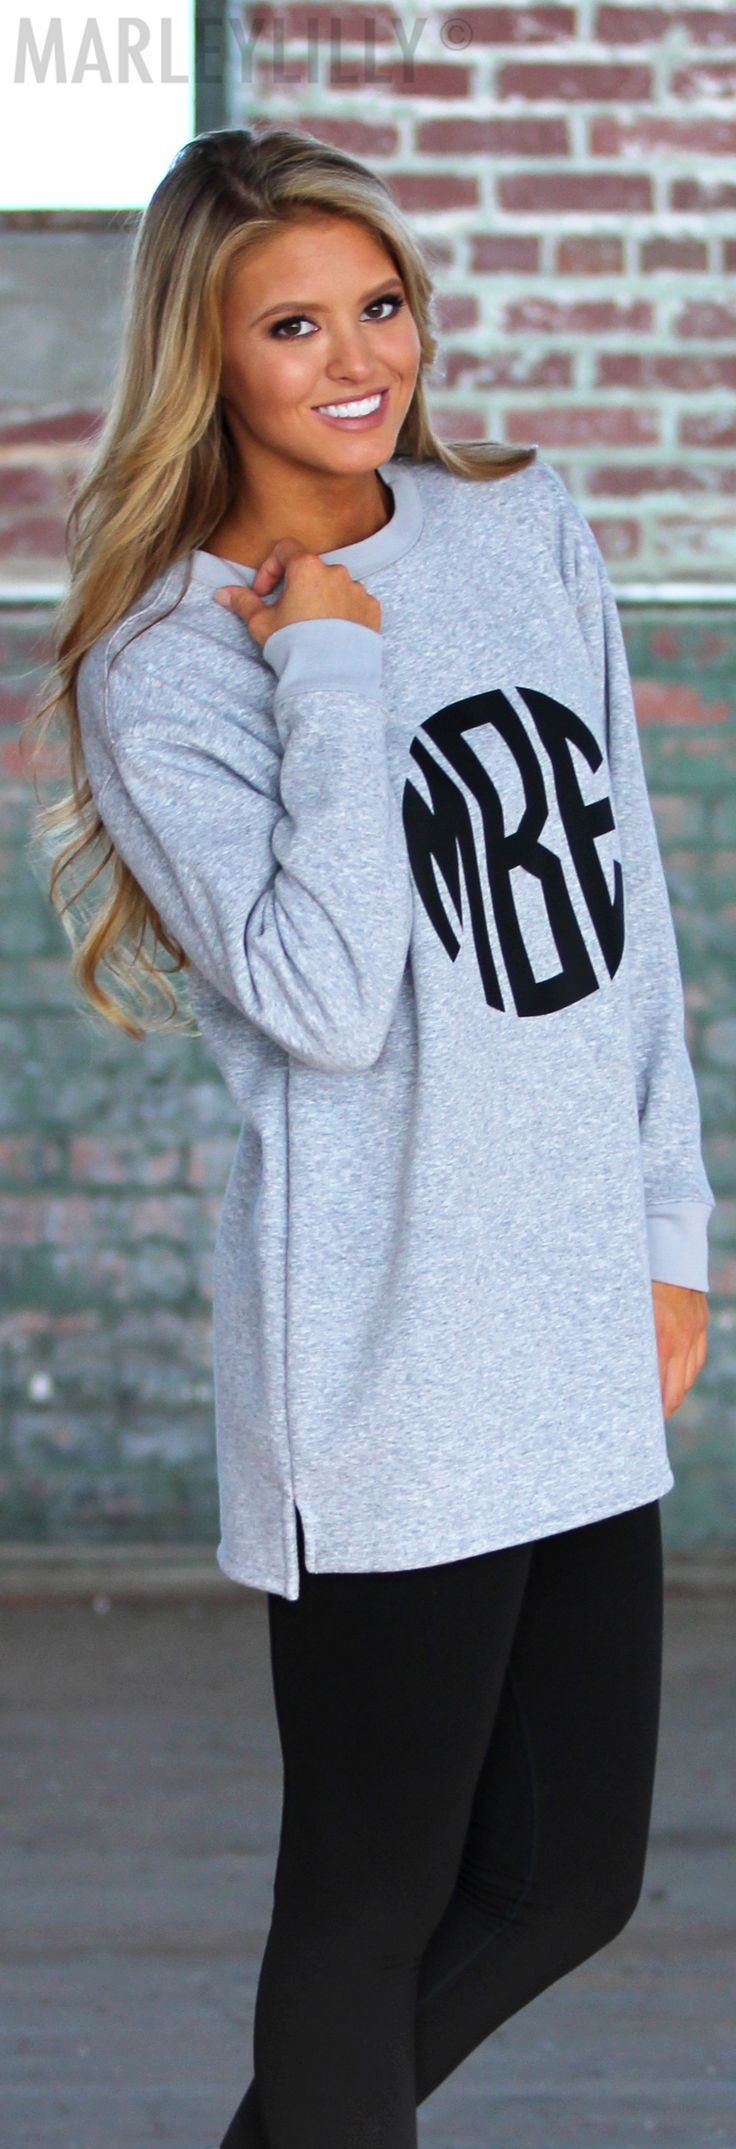 Sweater weather ready! Shop our Monogrammed Crewneck Sweatshirt ON SALE now!